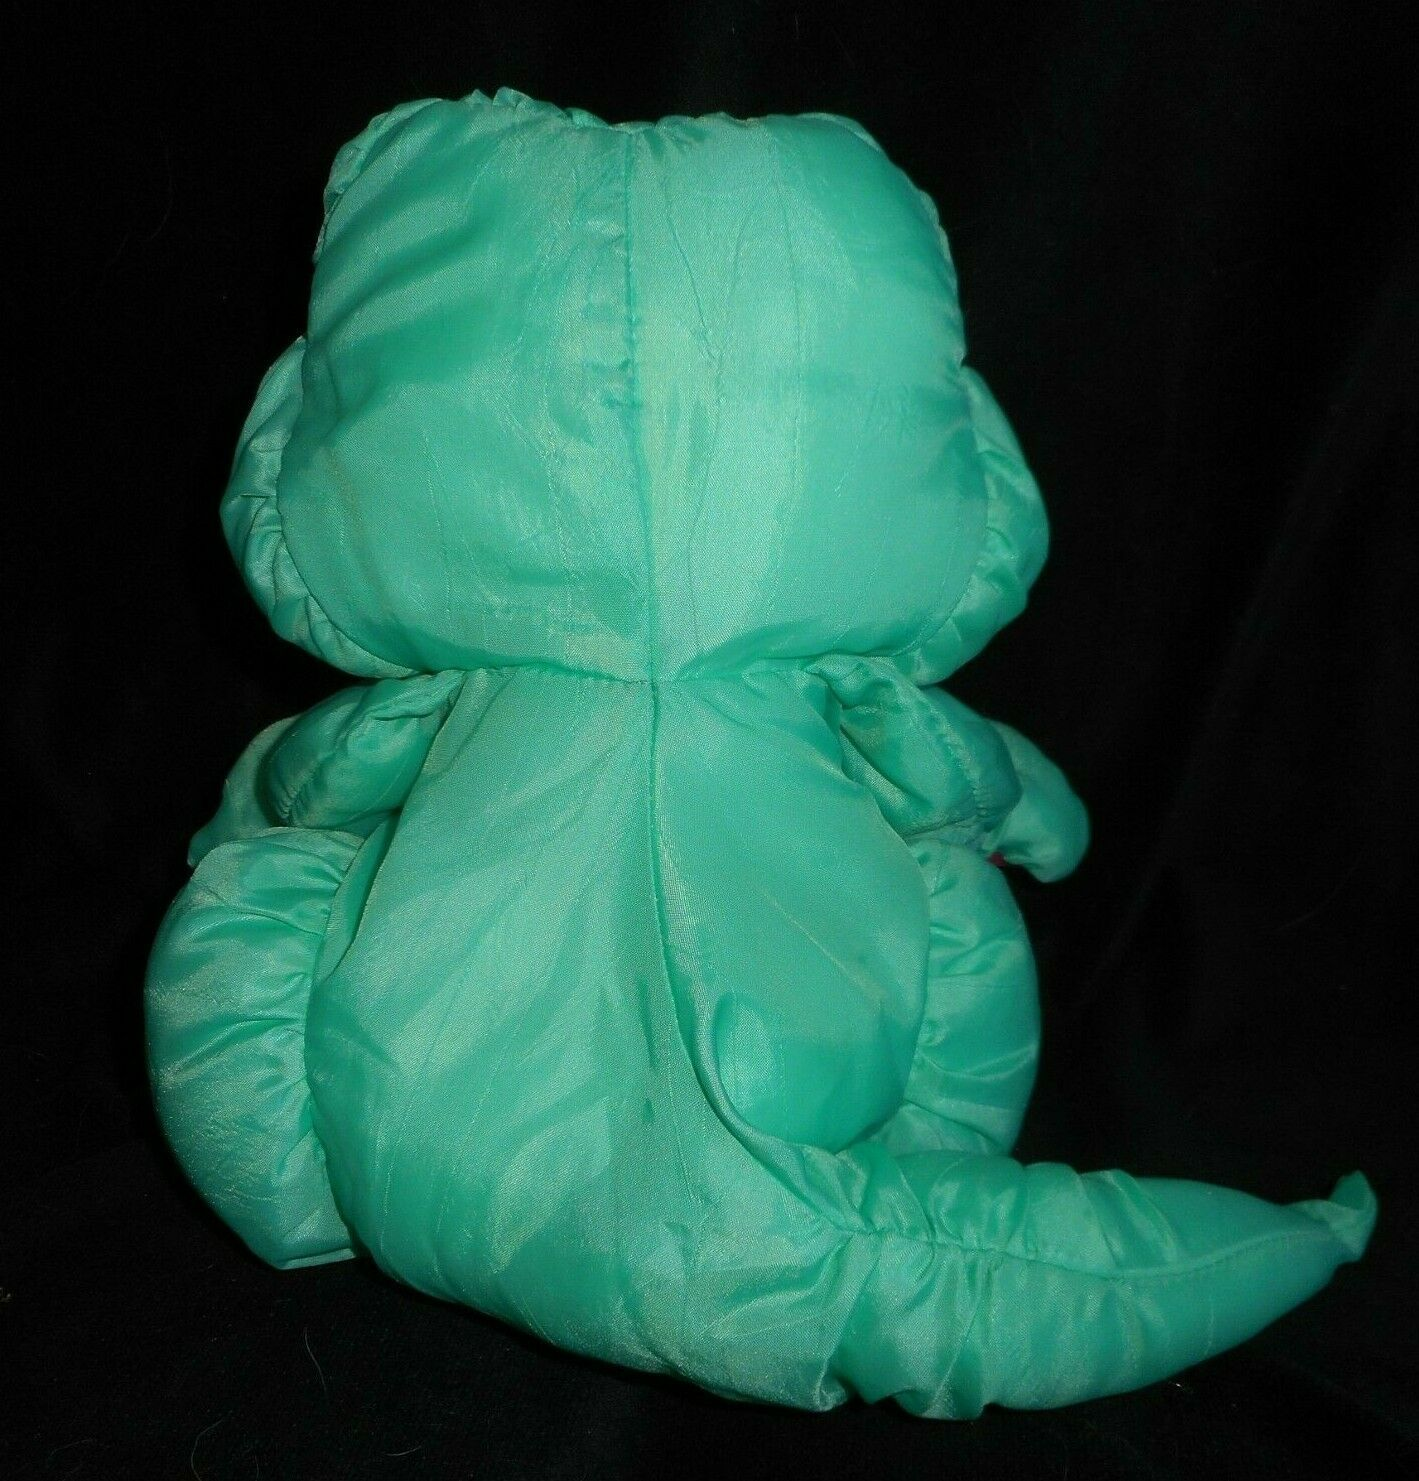 Vintage 1993 Puffalump Fisher Price Verde Caimán Peluche Plush Toy